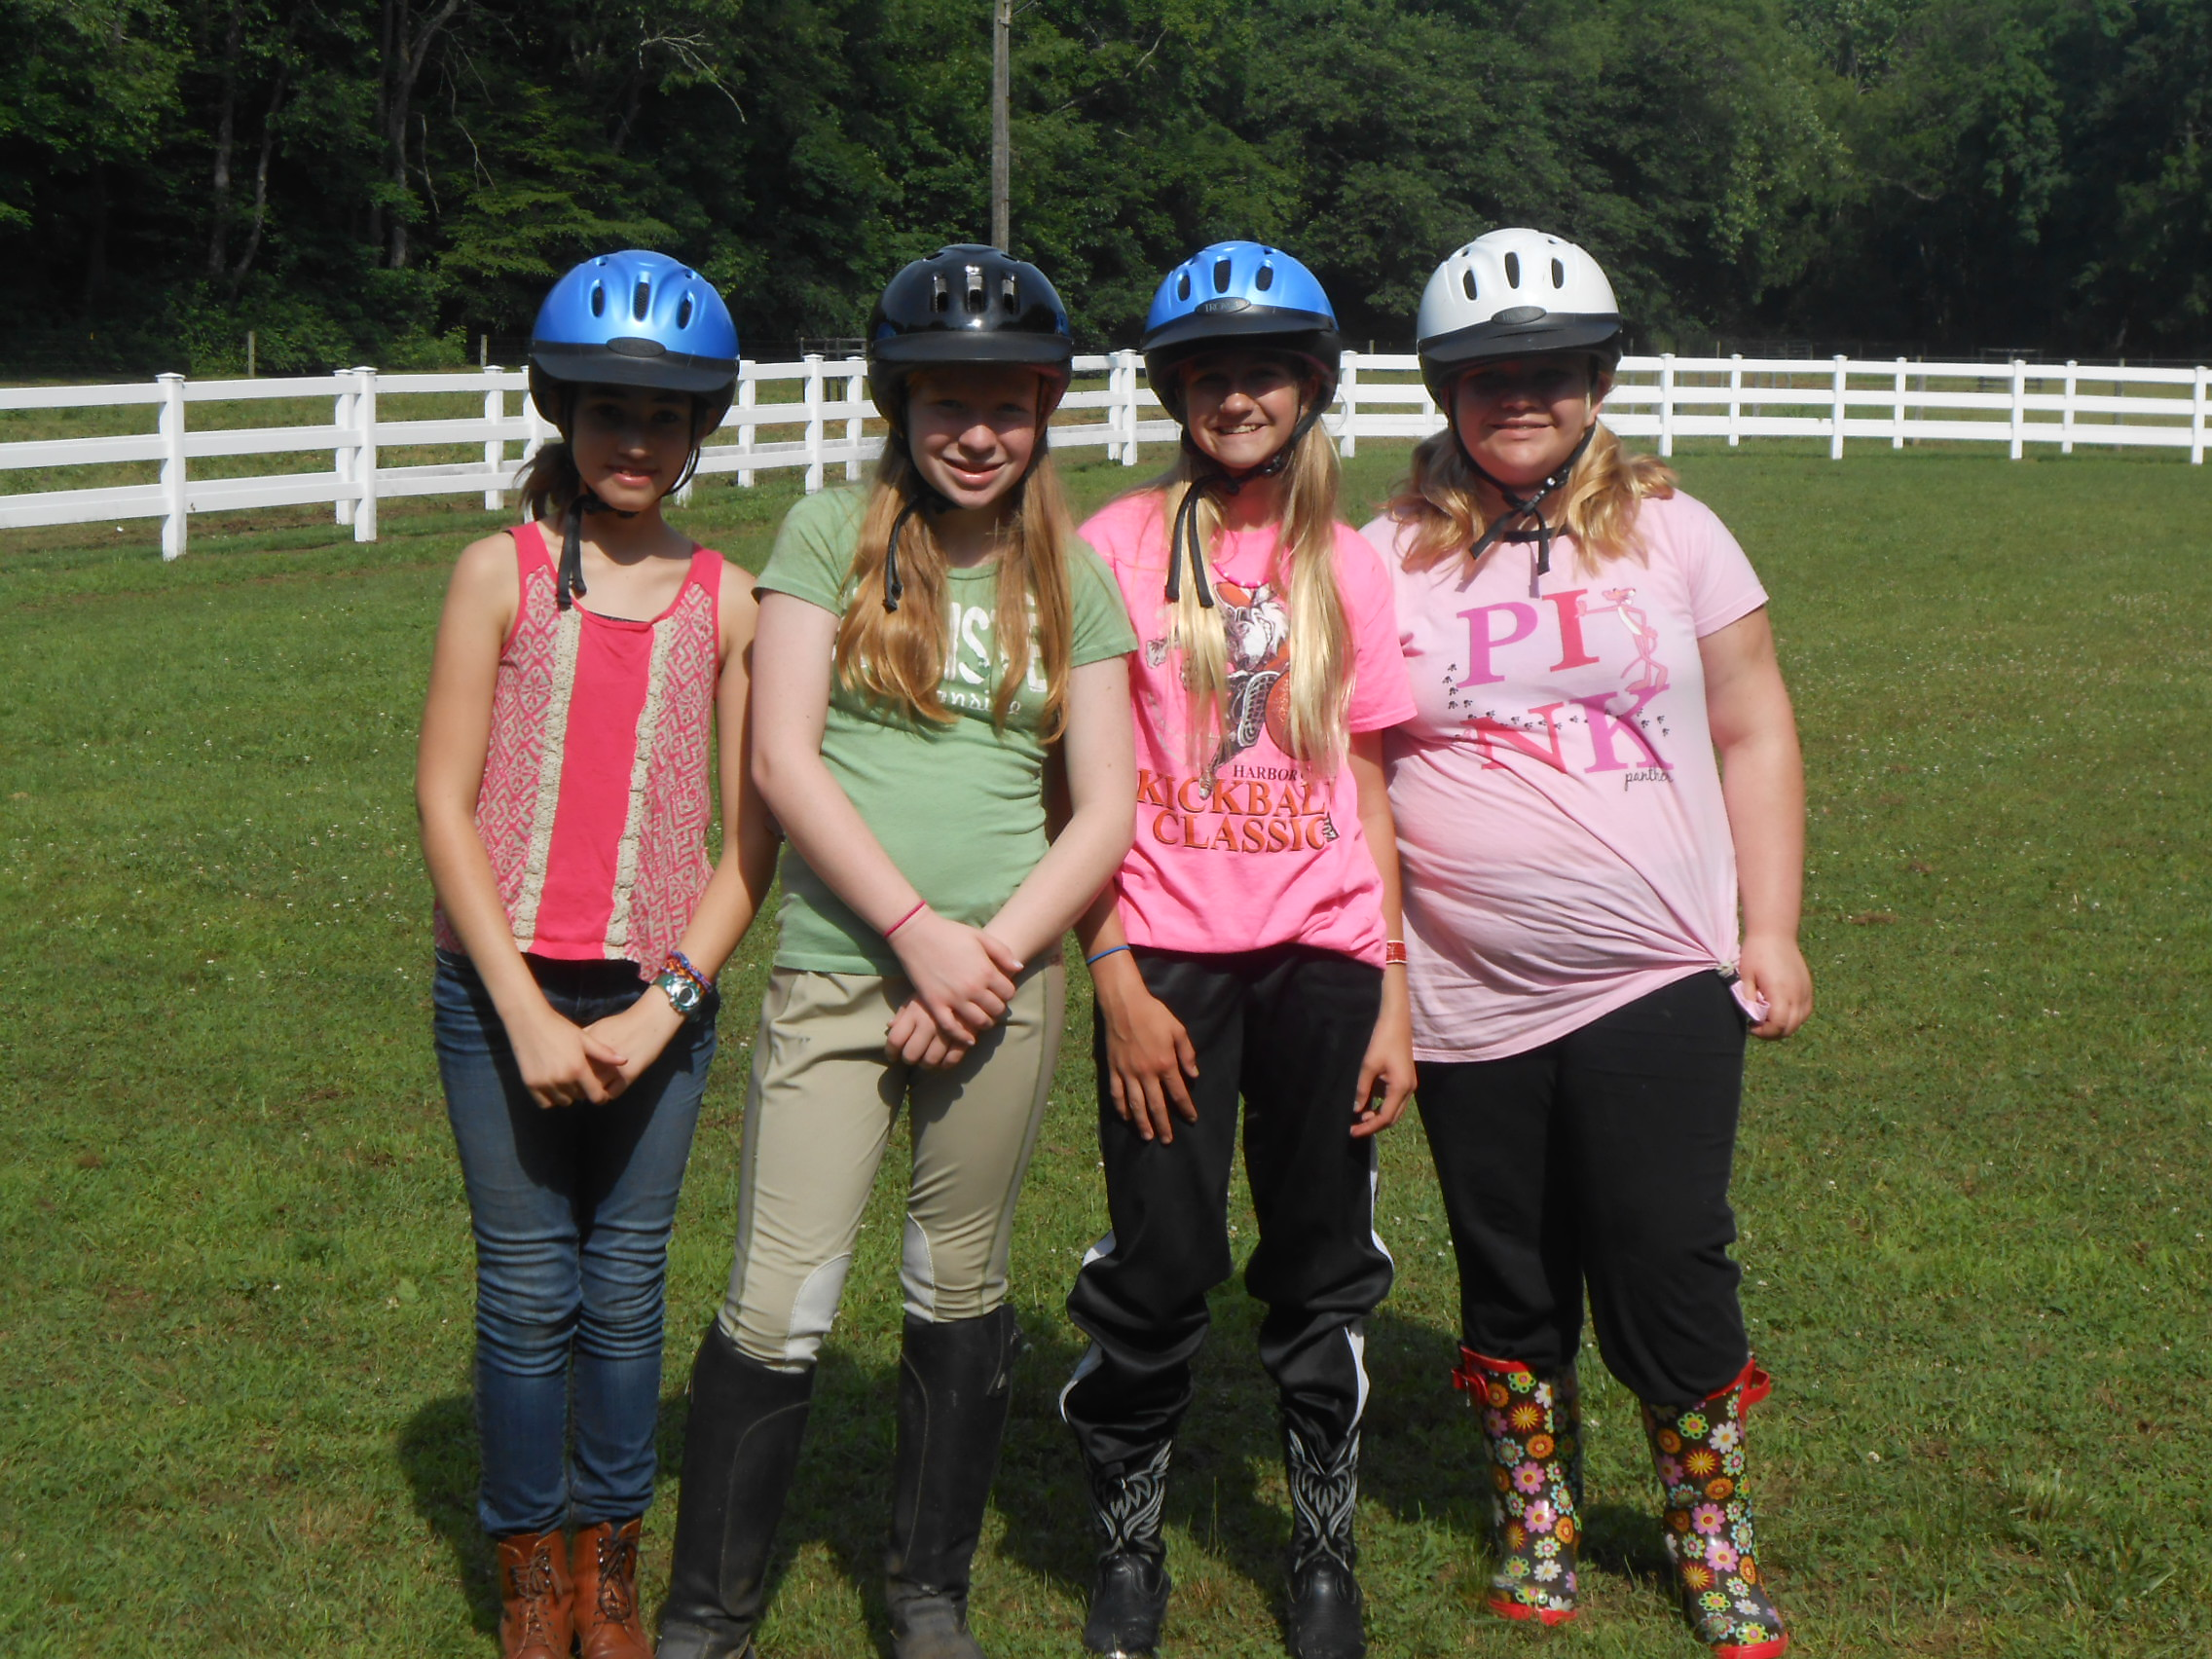 Girl Scout Juniors prepare for equestrian activities at Camp Skymeadow outside Pittsburgh. Photo by Lisa Shade, Girl Scouts Western Pennsylvania.